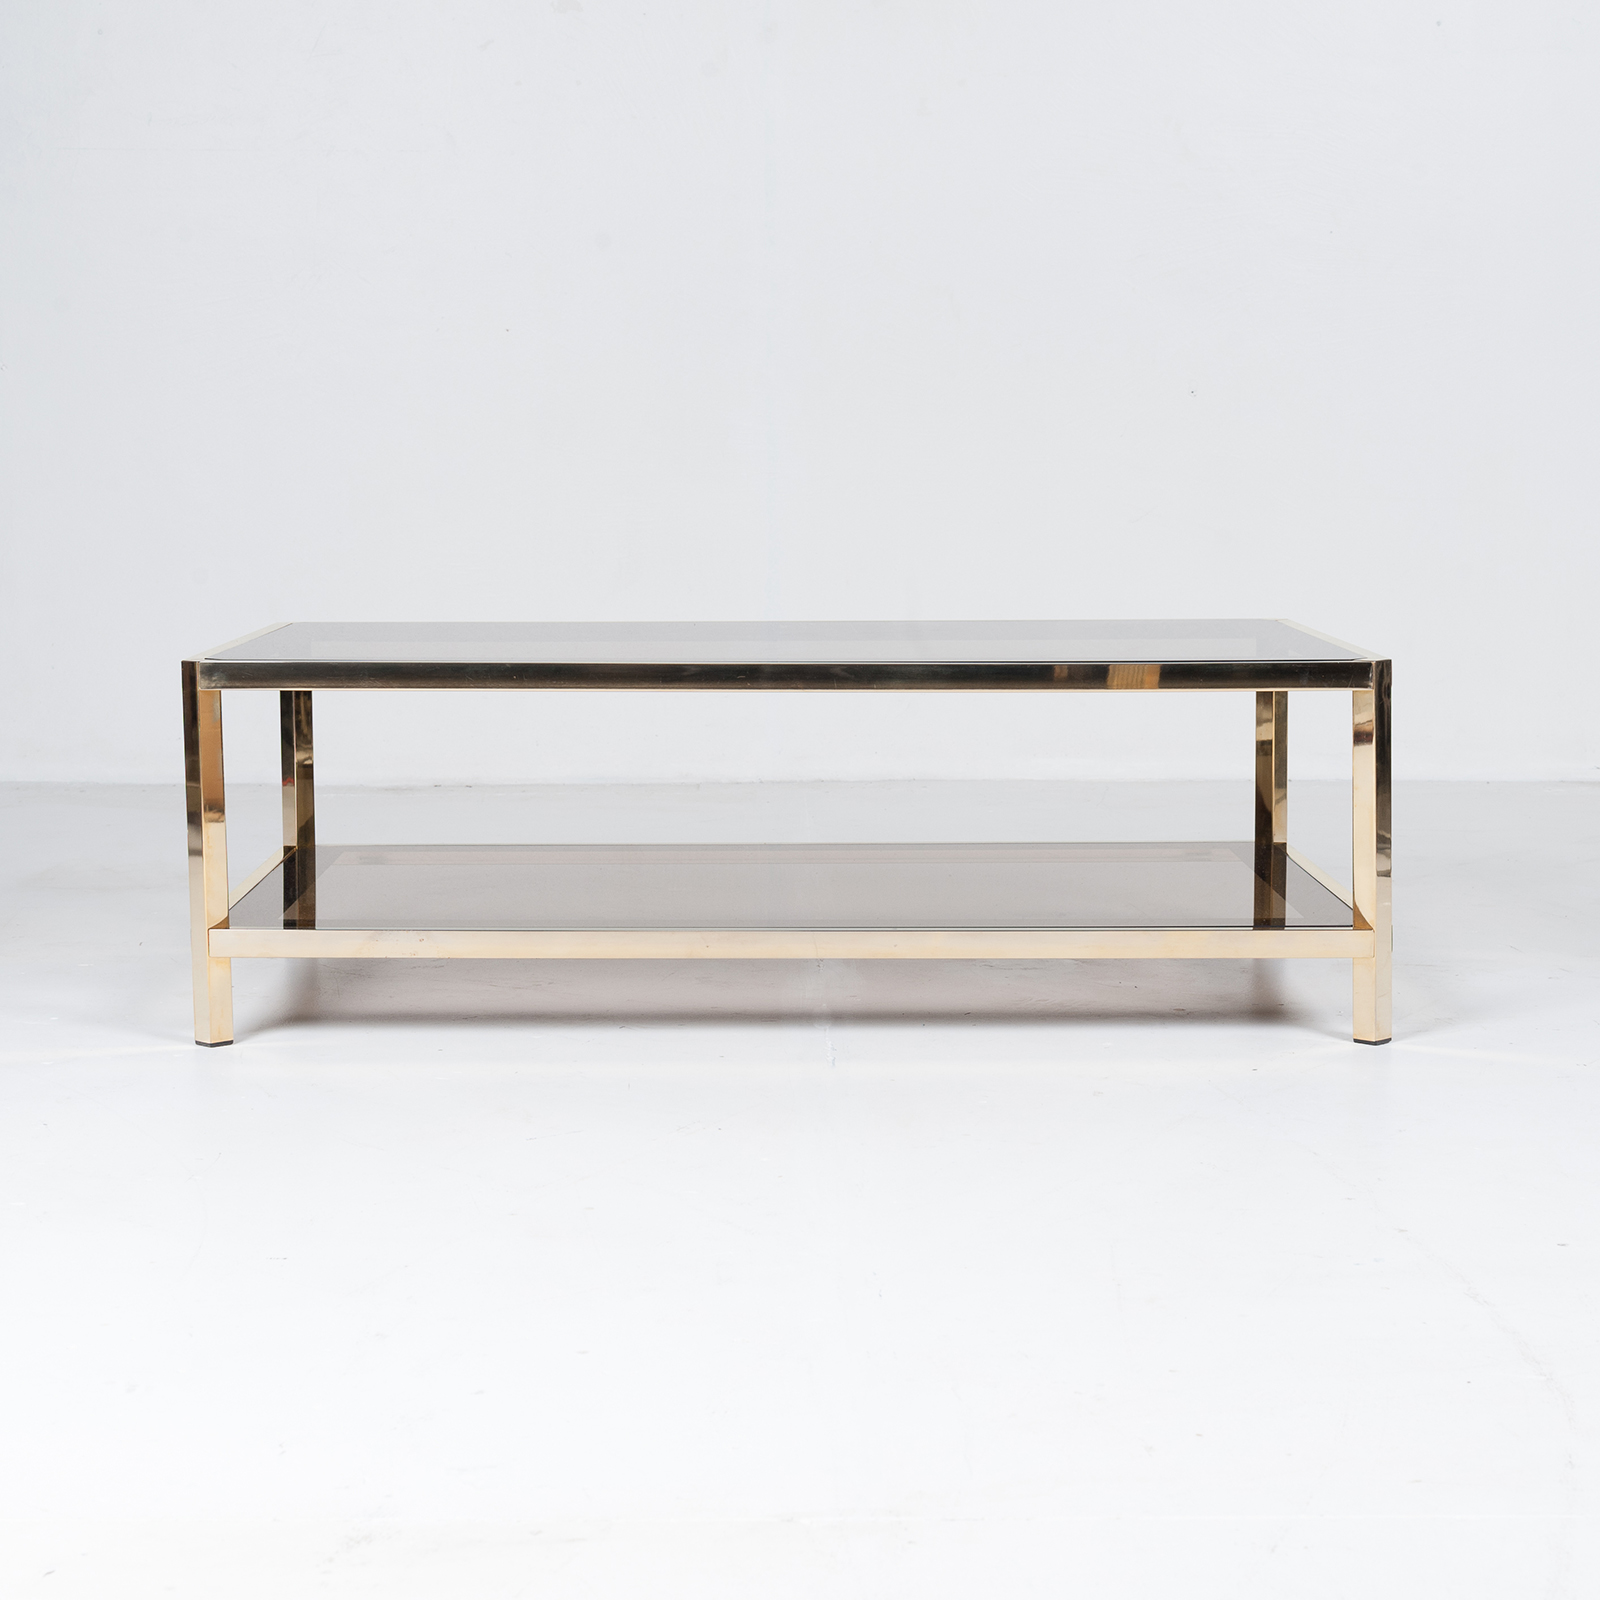 Rectangular Coffee Table By Pierre Cardin In Smoked Glass And Brass, 1960s, France17